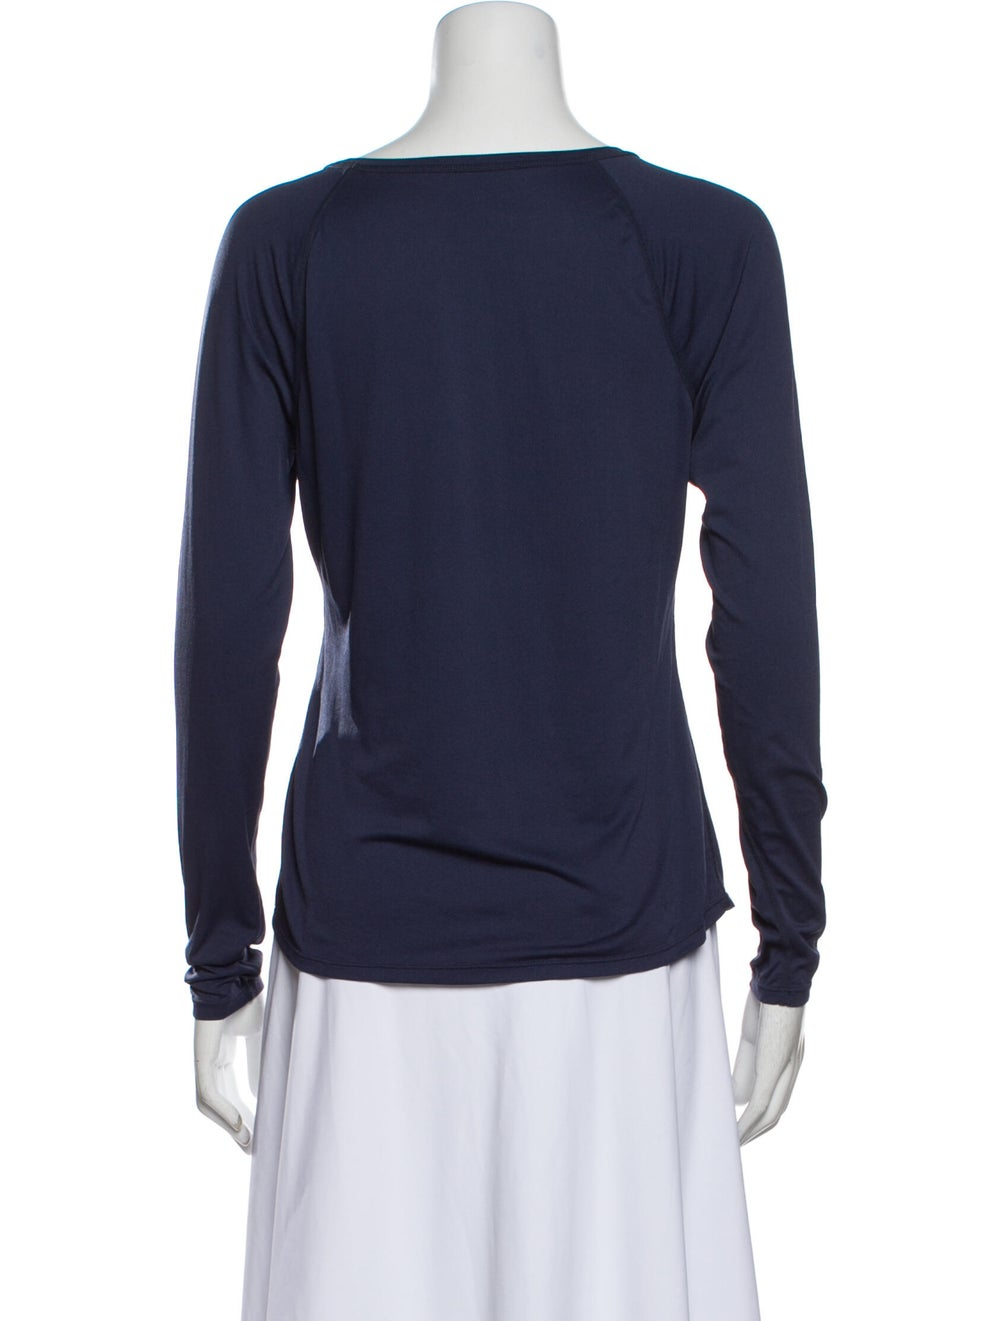 Outdoor Voices Scoop Neck Long Sleeve T-Shirt Blue - image 3